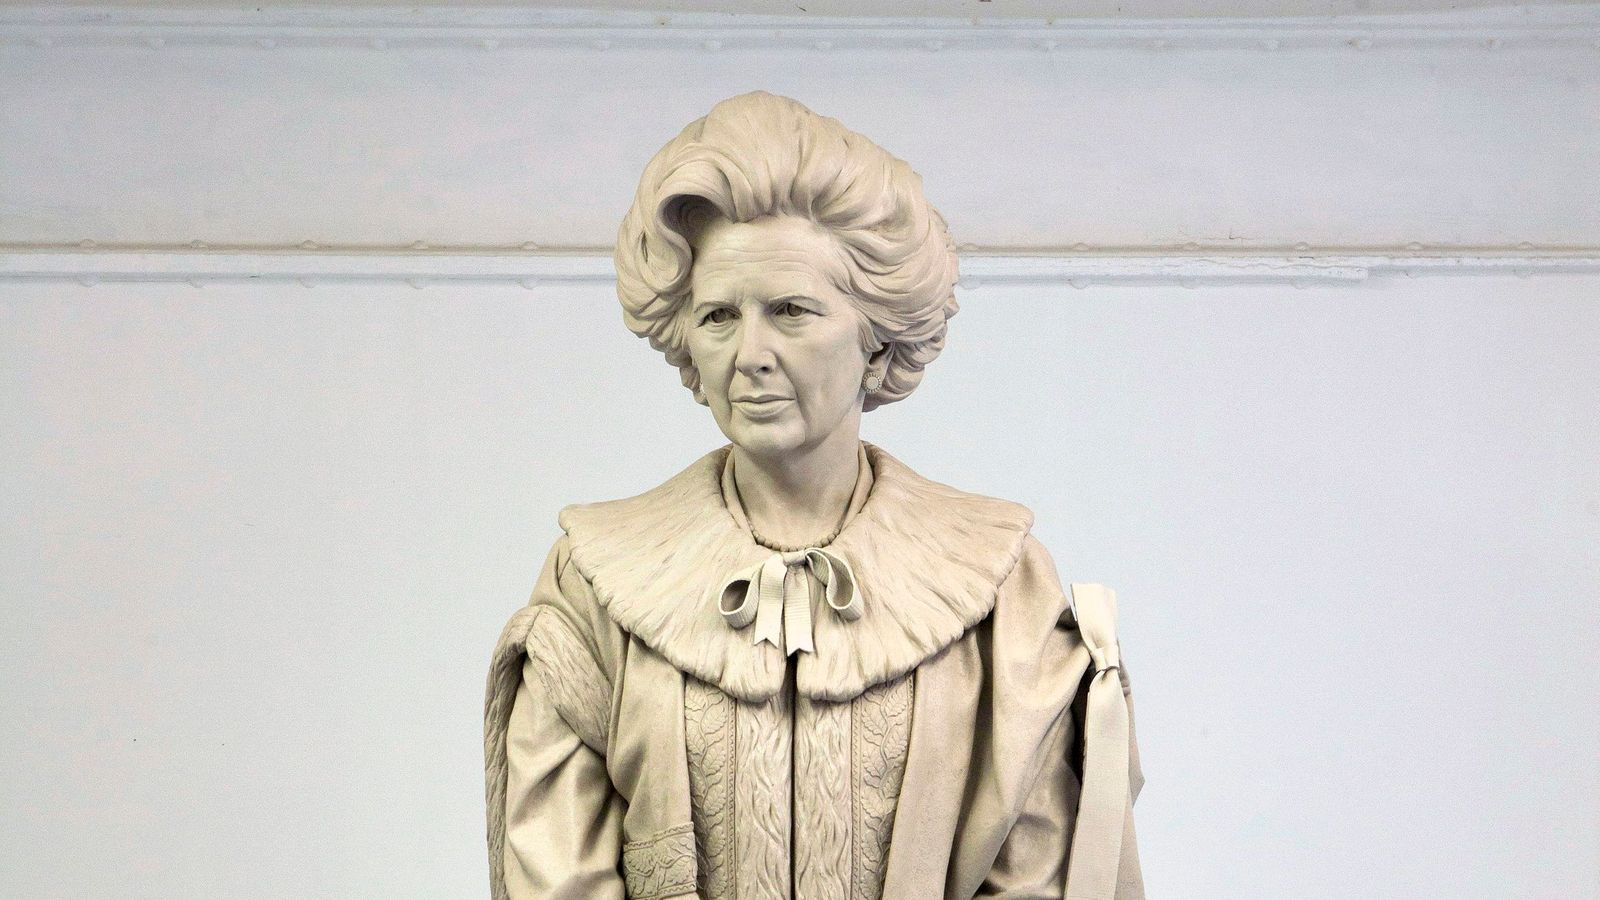 Margaret Thatcher statue: More than 1,000 vow to attend 'egg throwing contest' at unveiling amid backlash